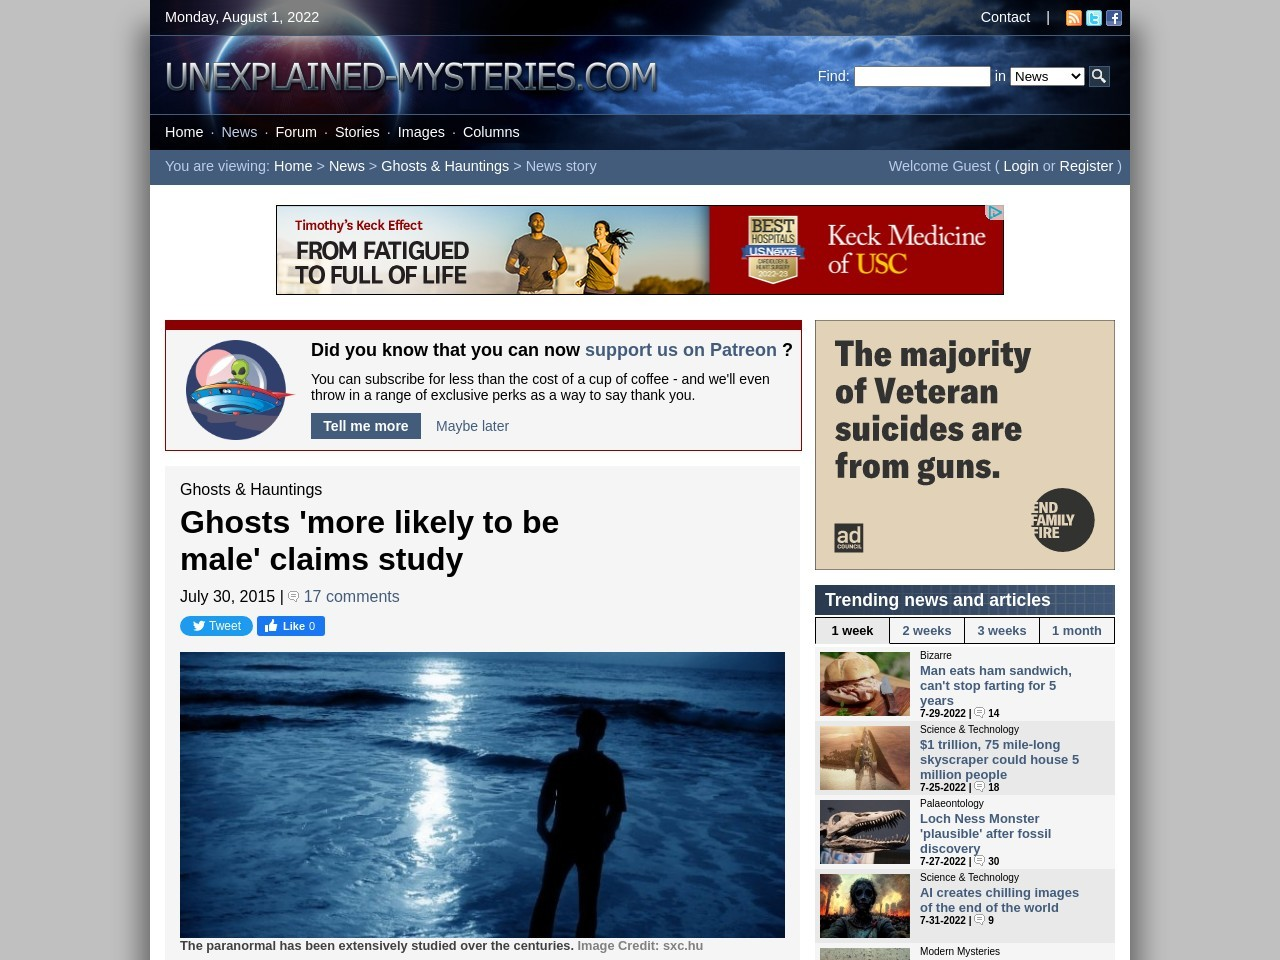 Ghosts 'more likely to be male' claims study